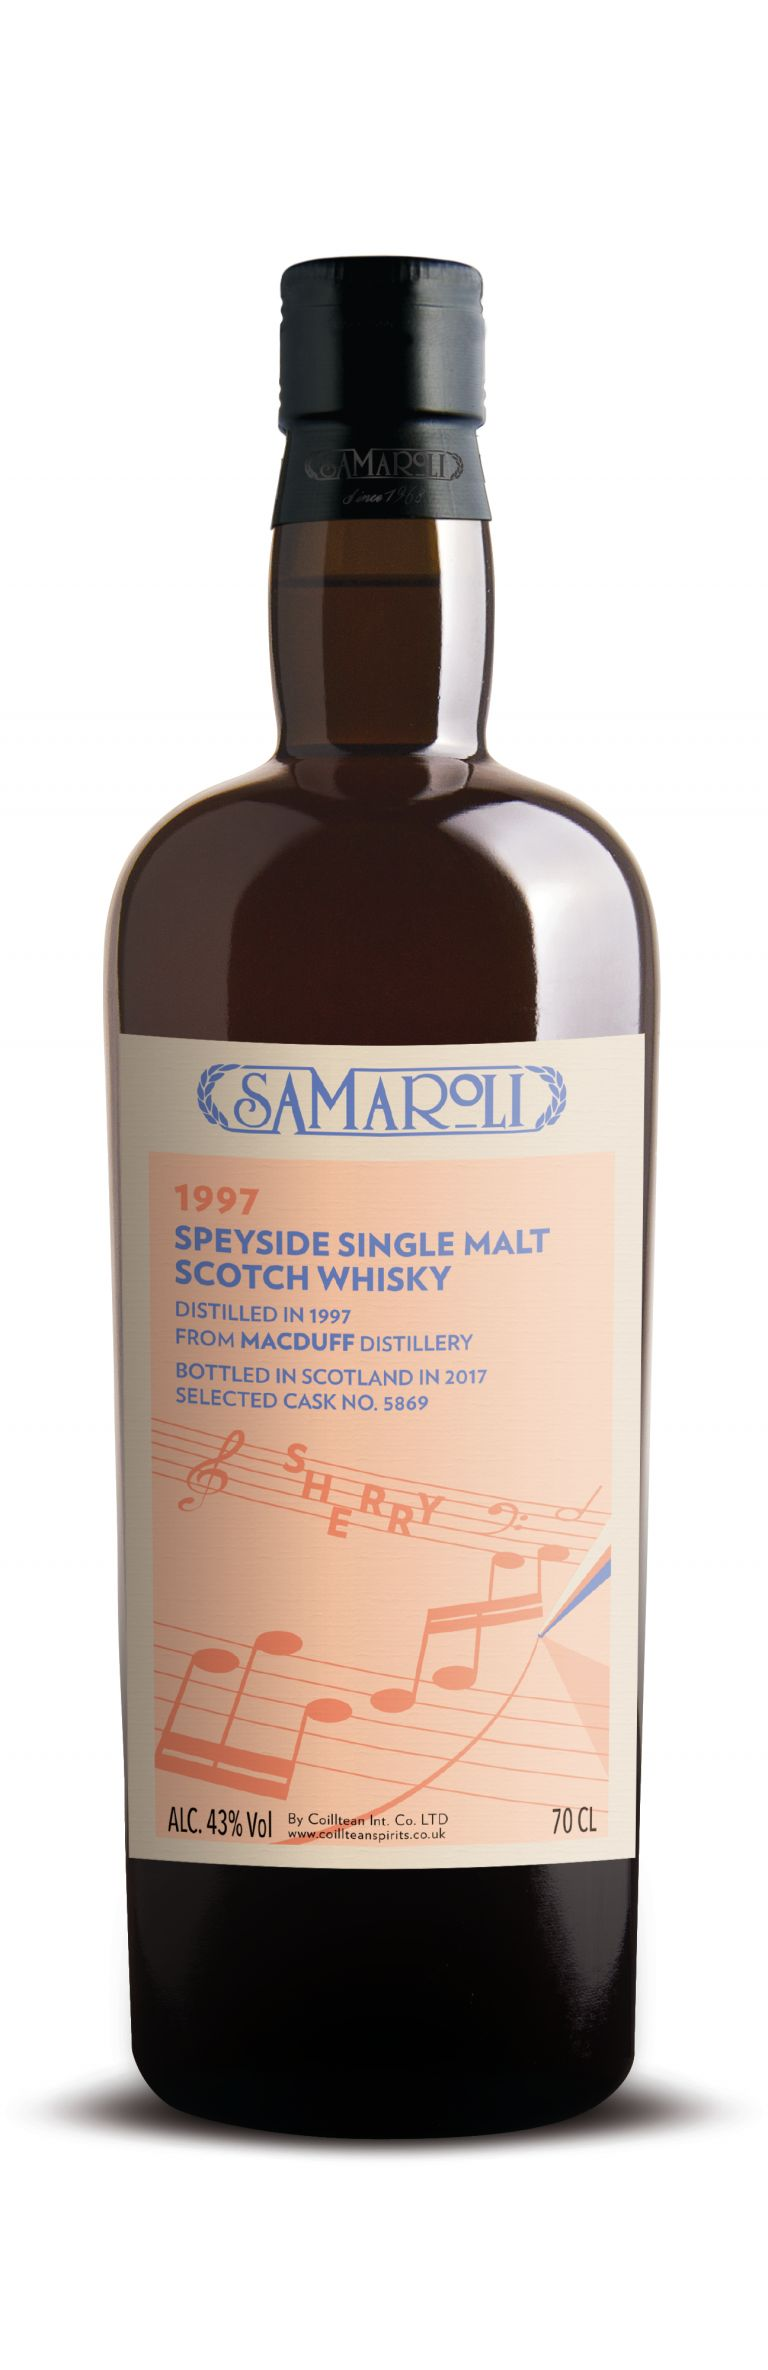 1997 Macduff Sherry - Speyside Single Malt Scotch Whisky - ed. 2017 - 70 cl